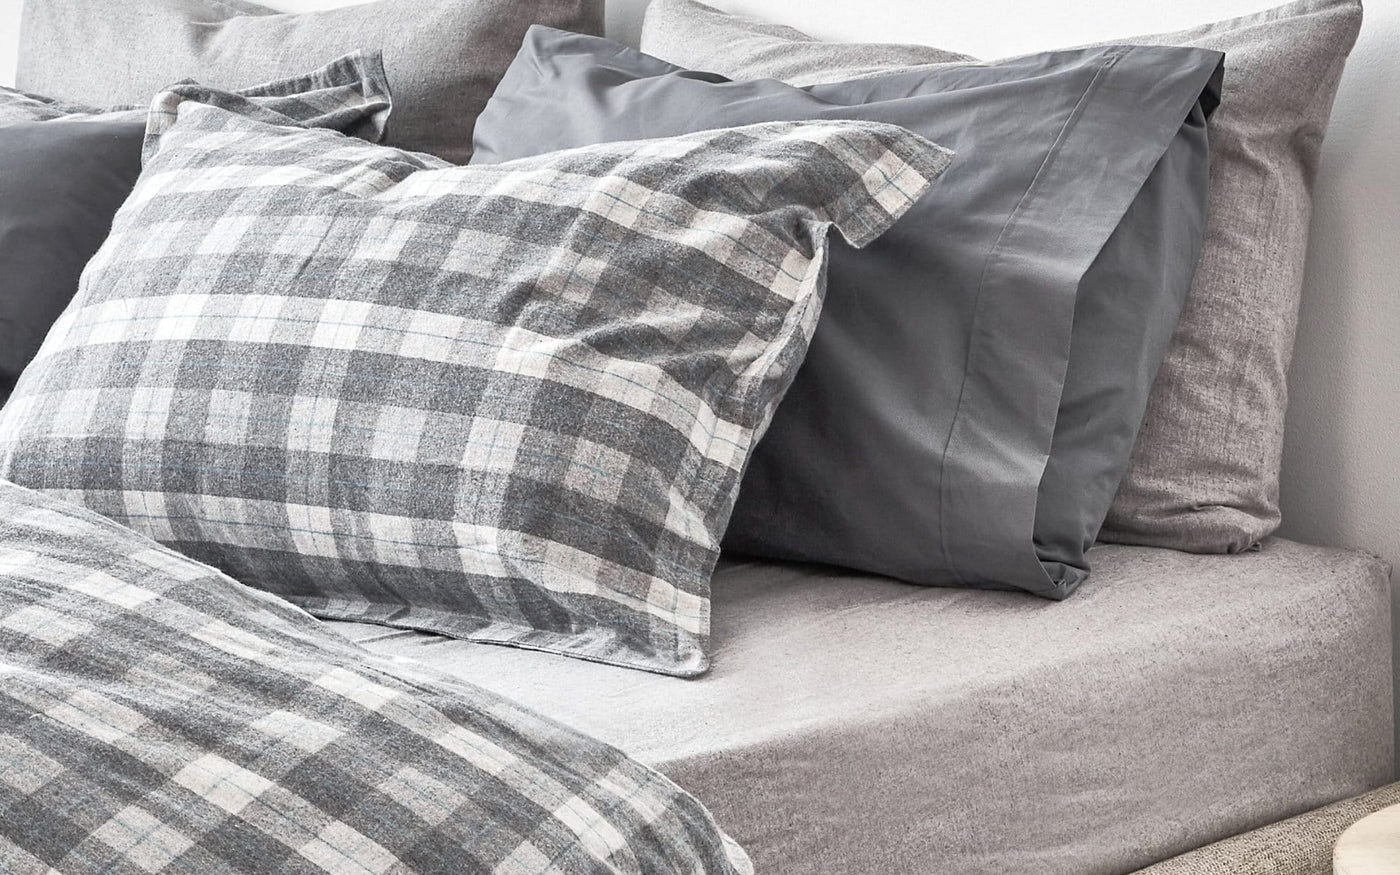 Flannel bedding gray with plaid. Pillows sitting on a bed.